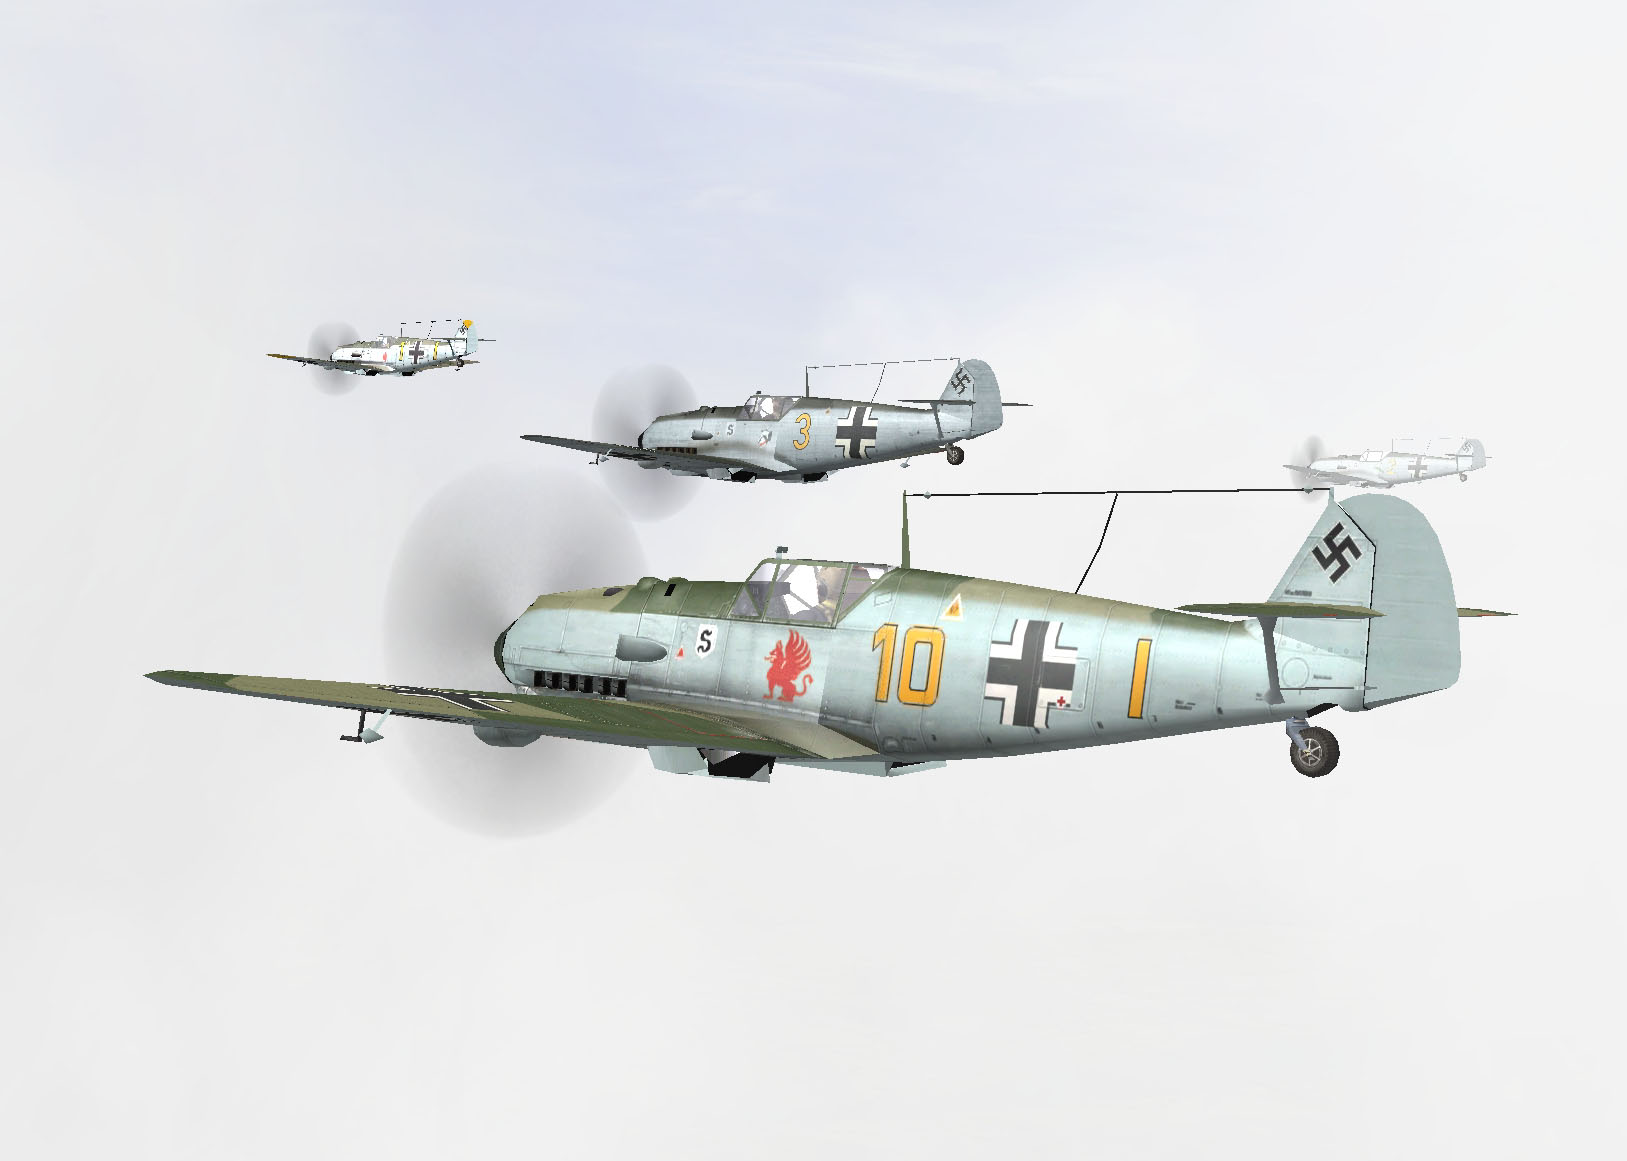 07/1940 Bf109 E3 on their way over the channel